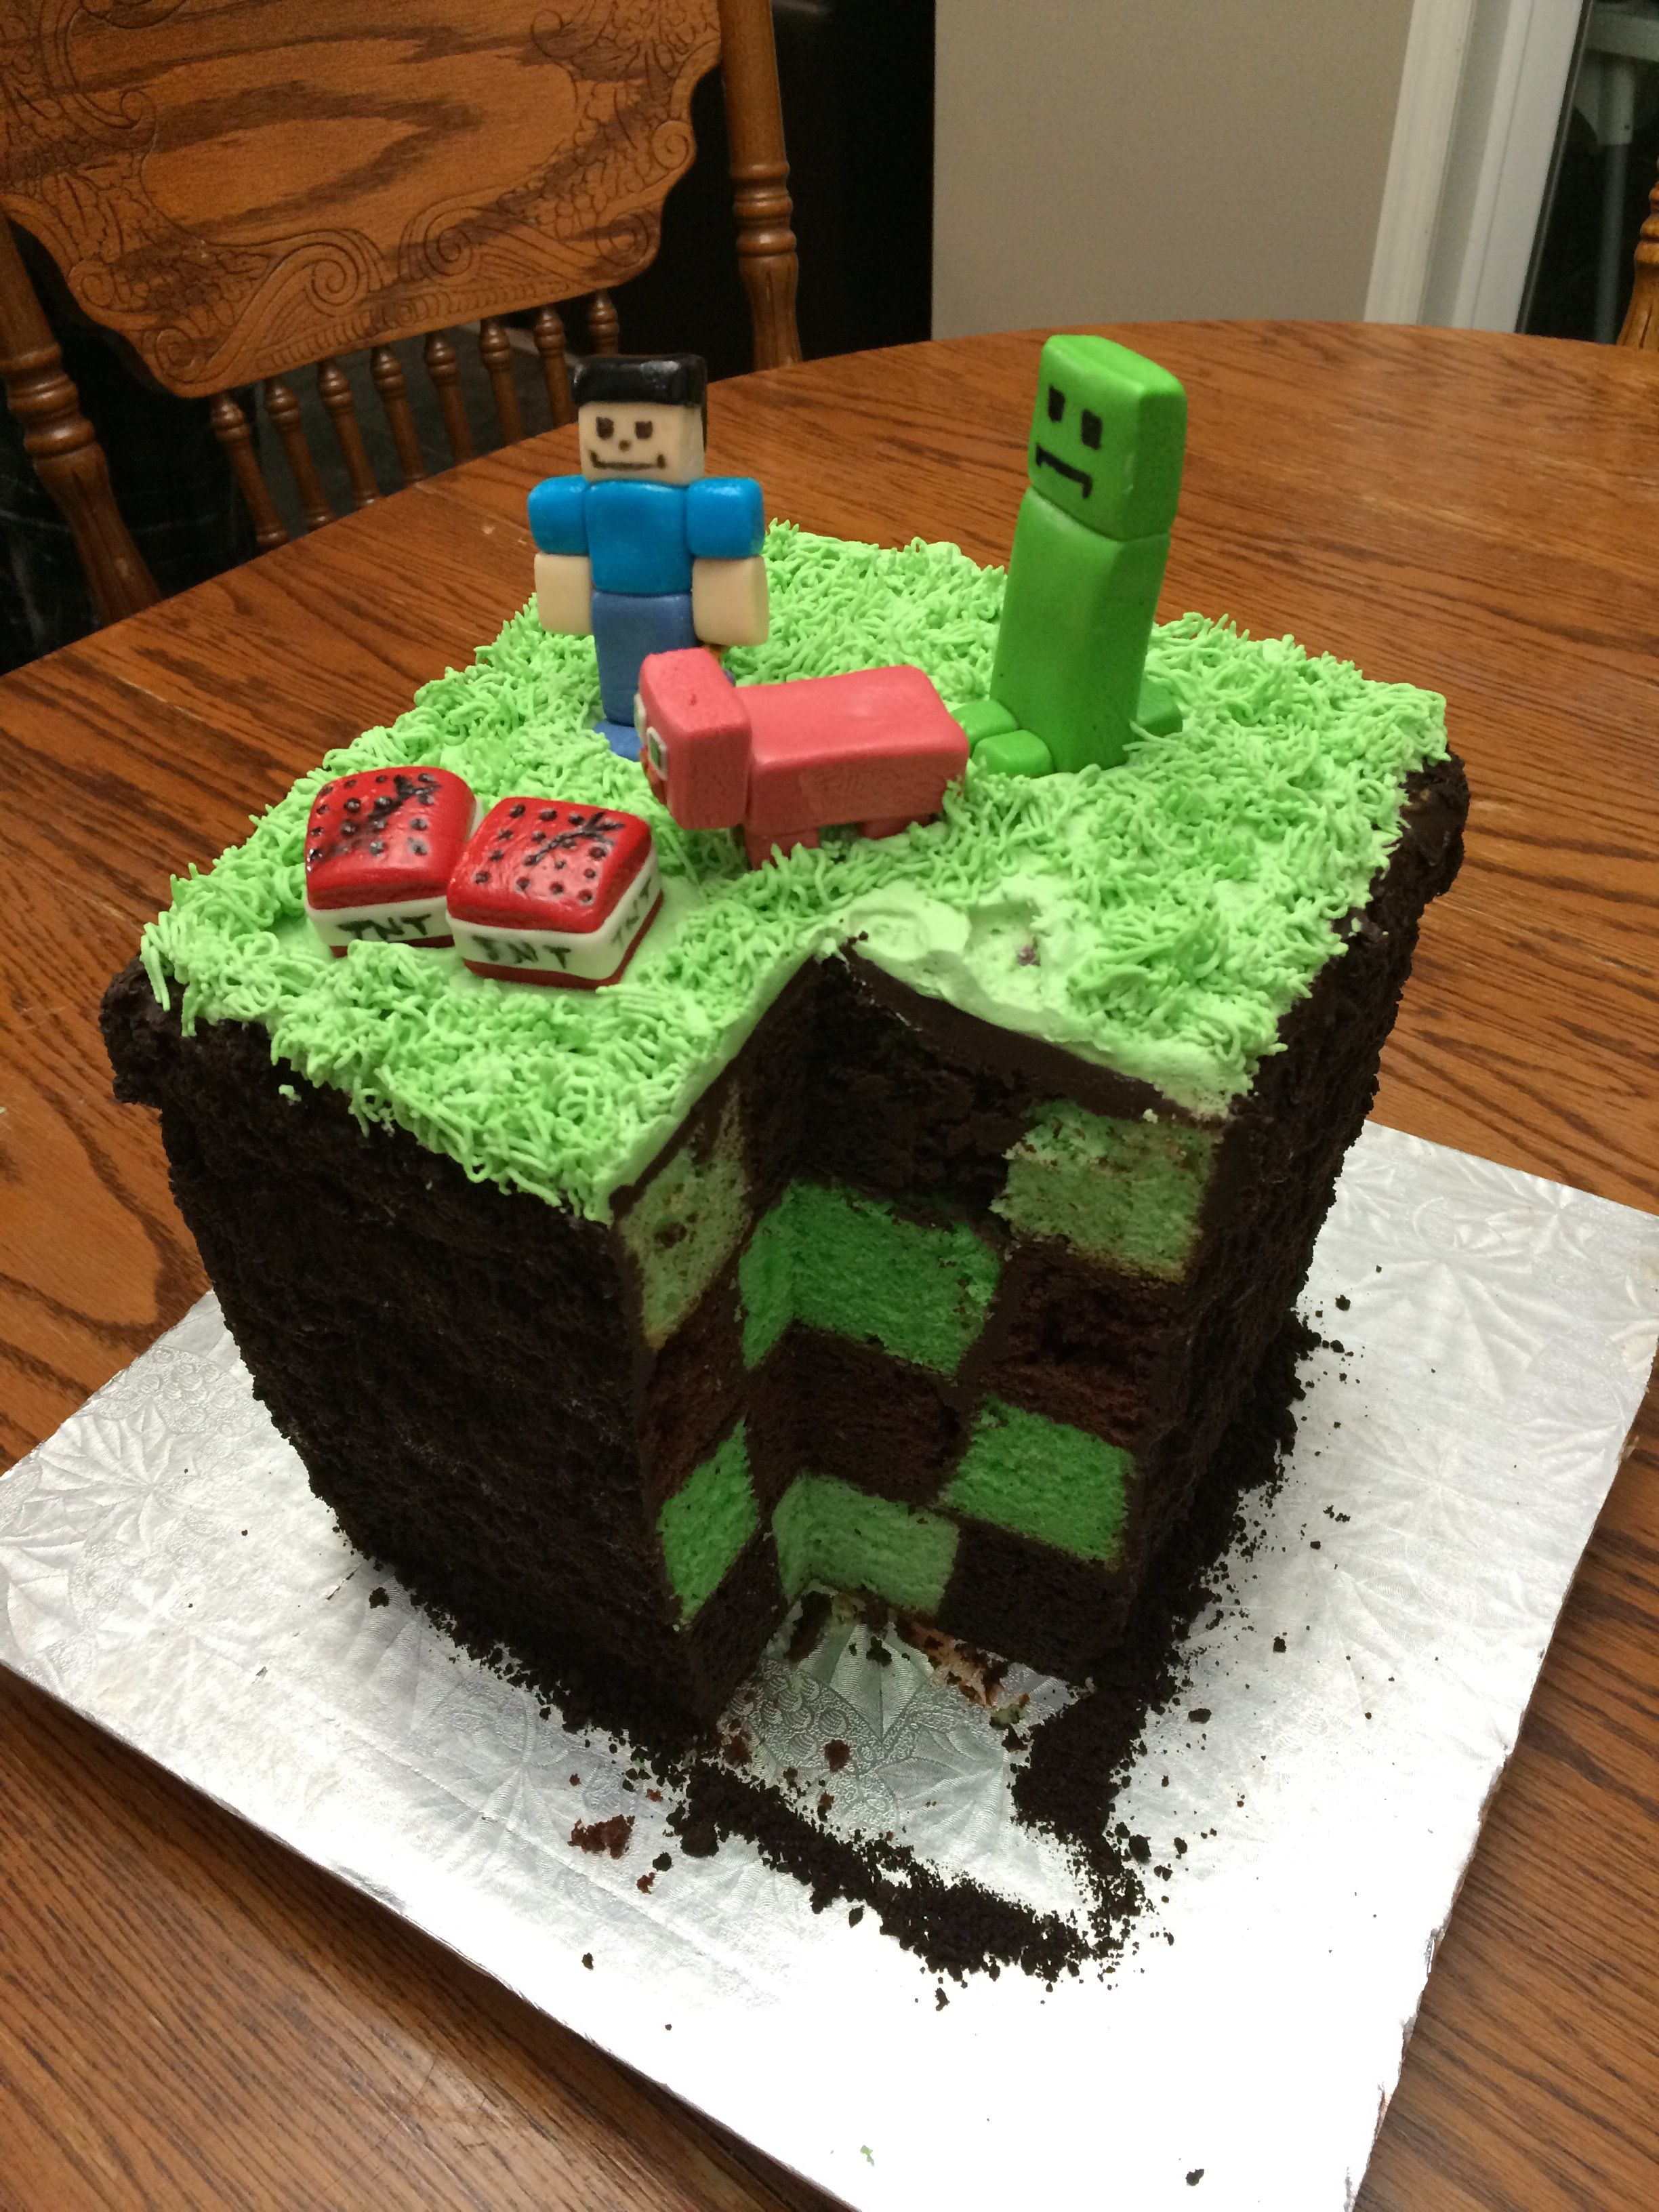 My Mom Made A Pretty Cool Minecraft Cake For My Brother S